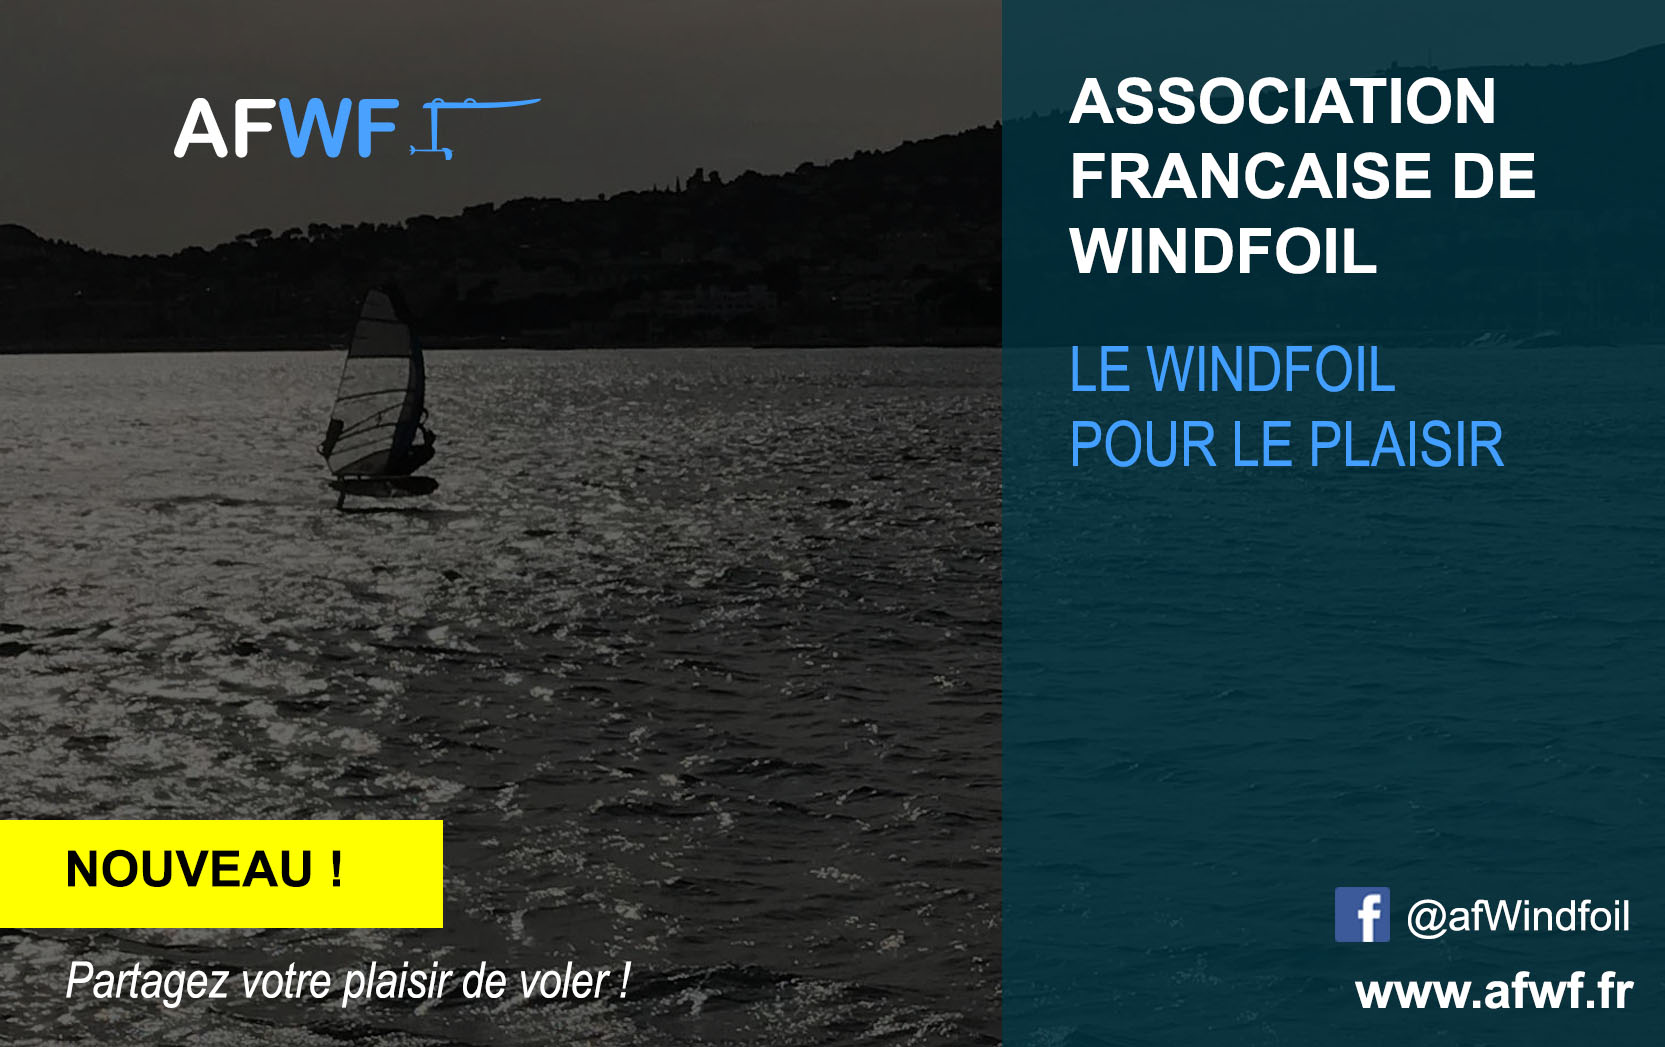 association francaise de windfoil